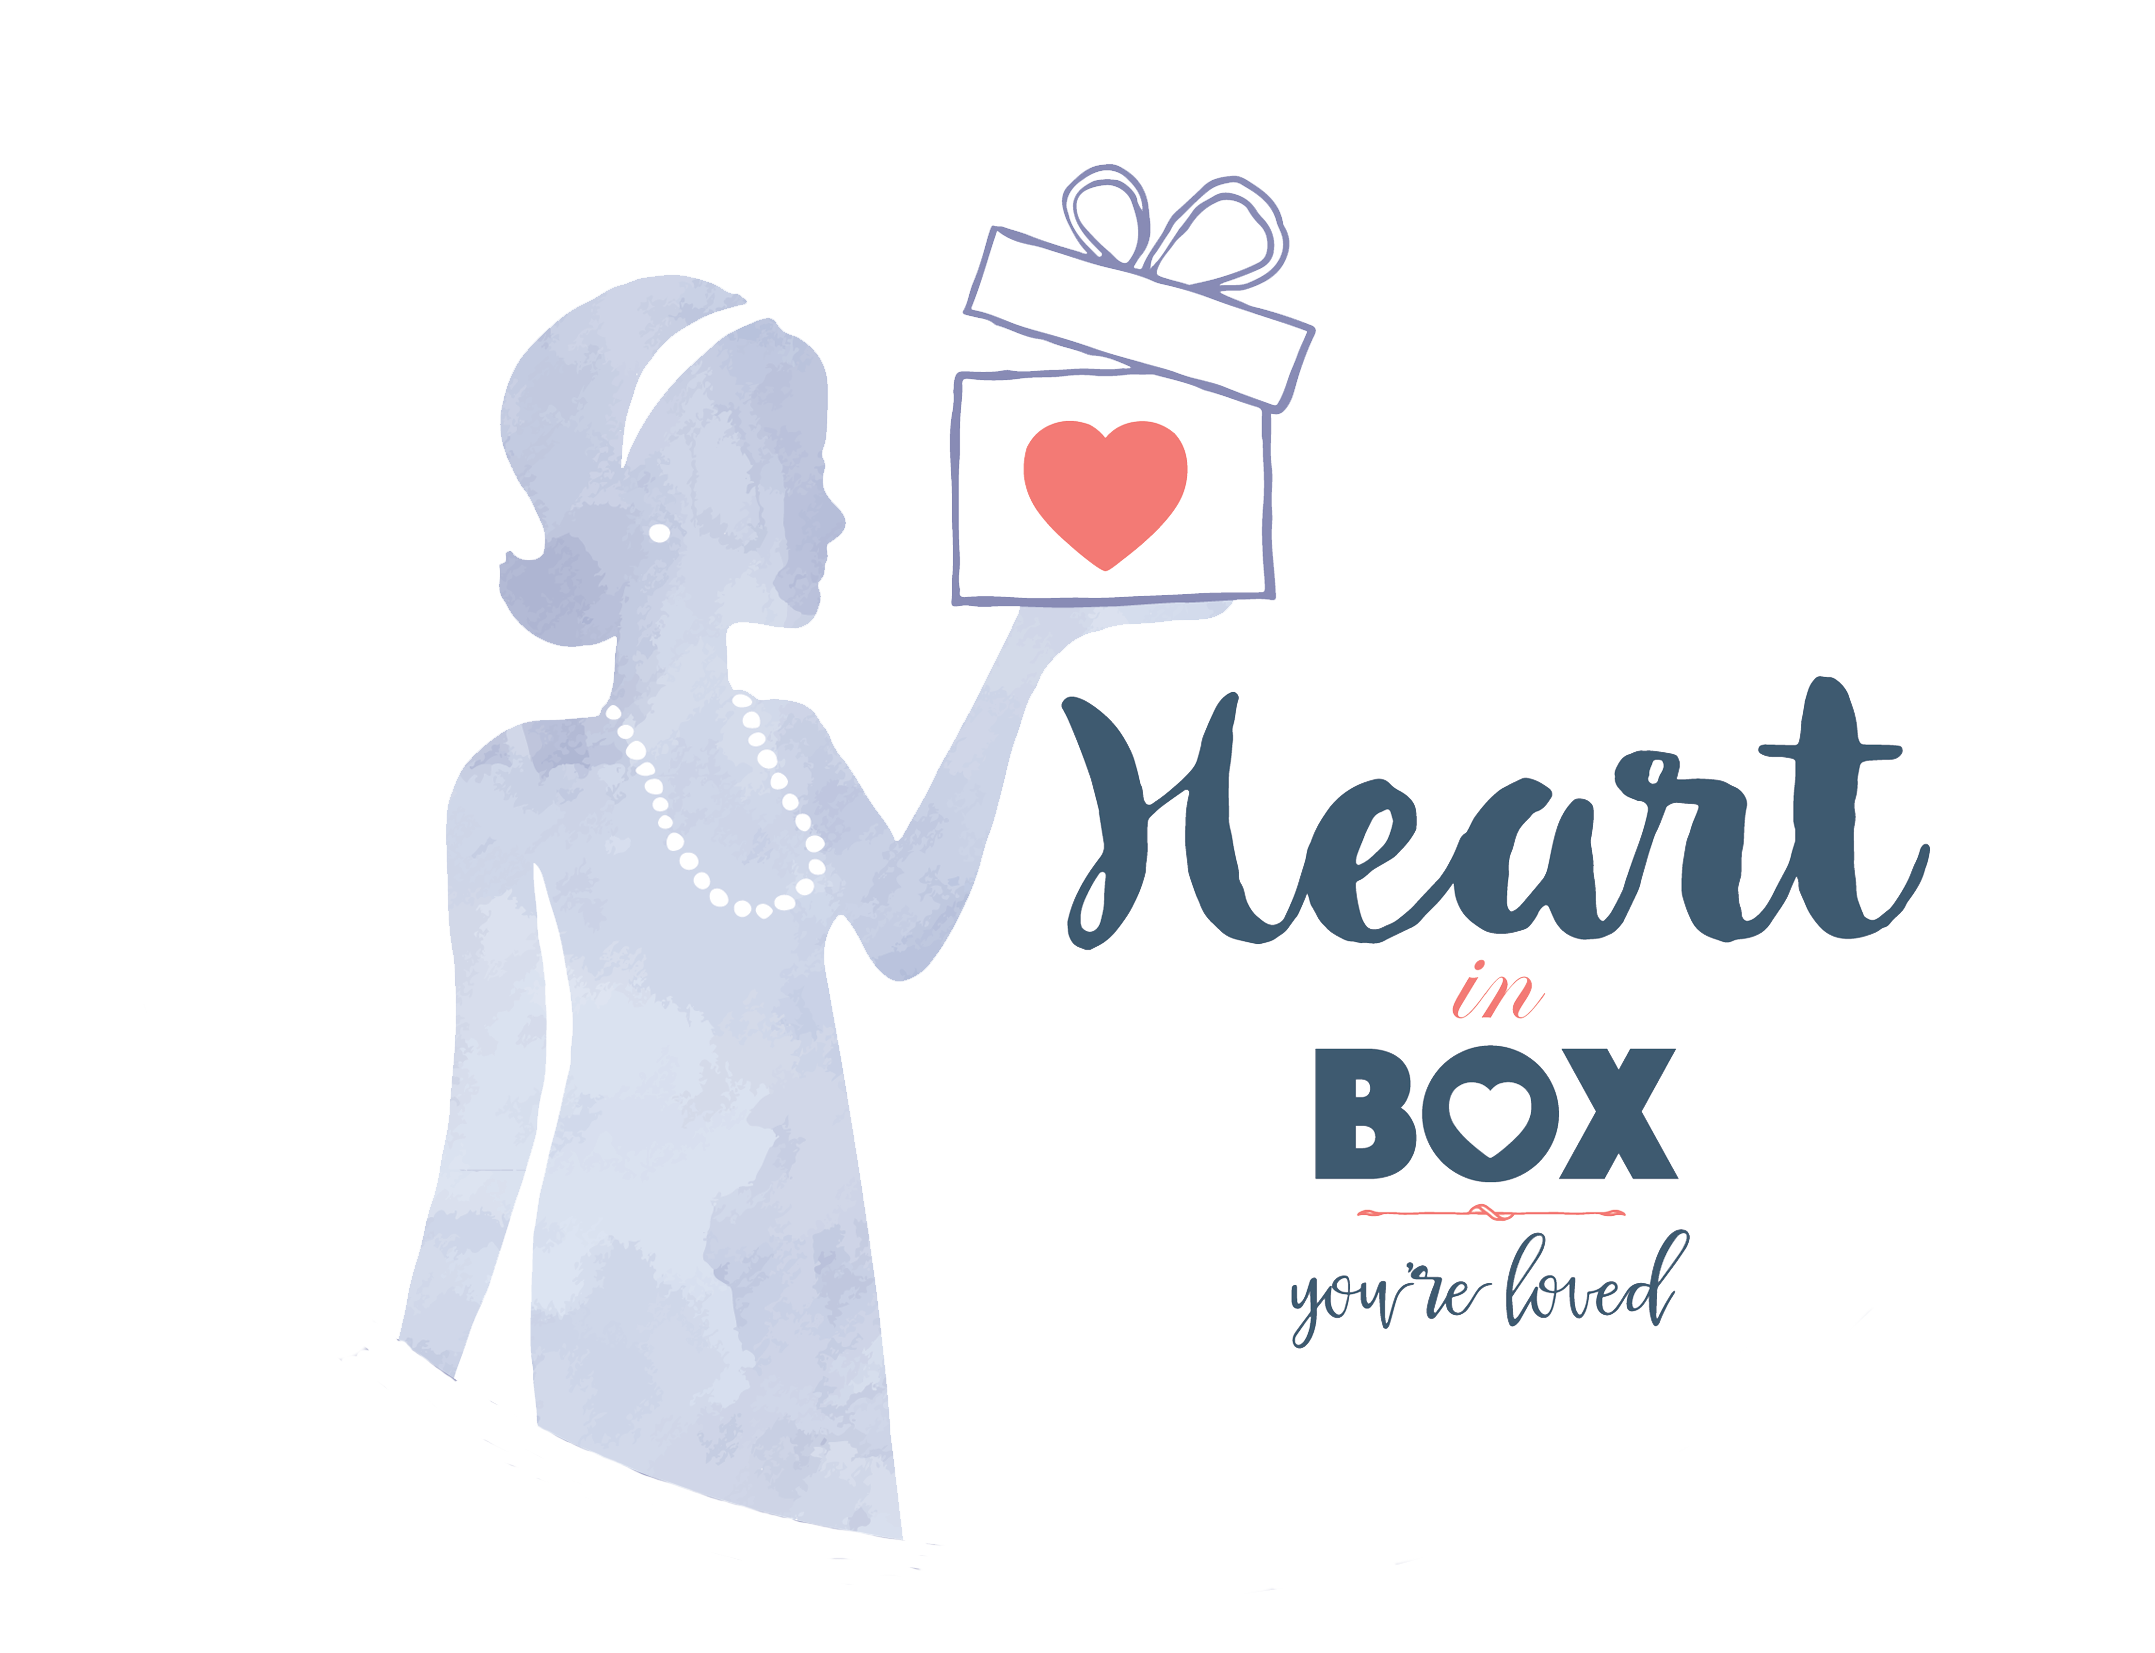 Heart in Box